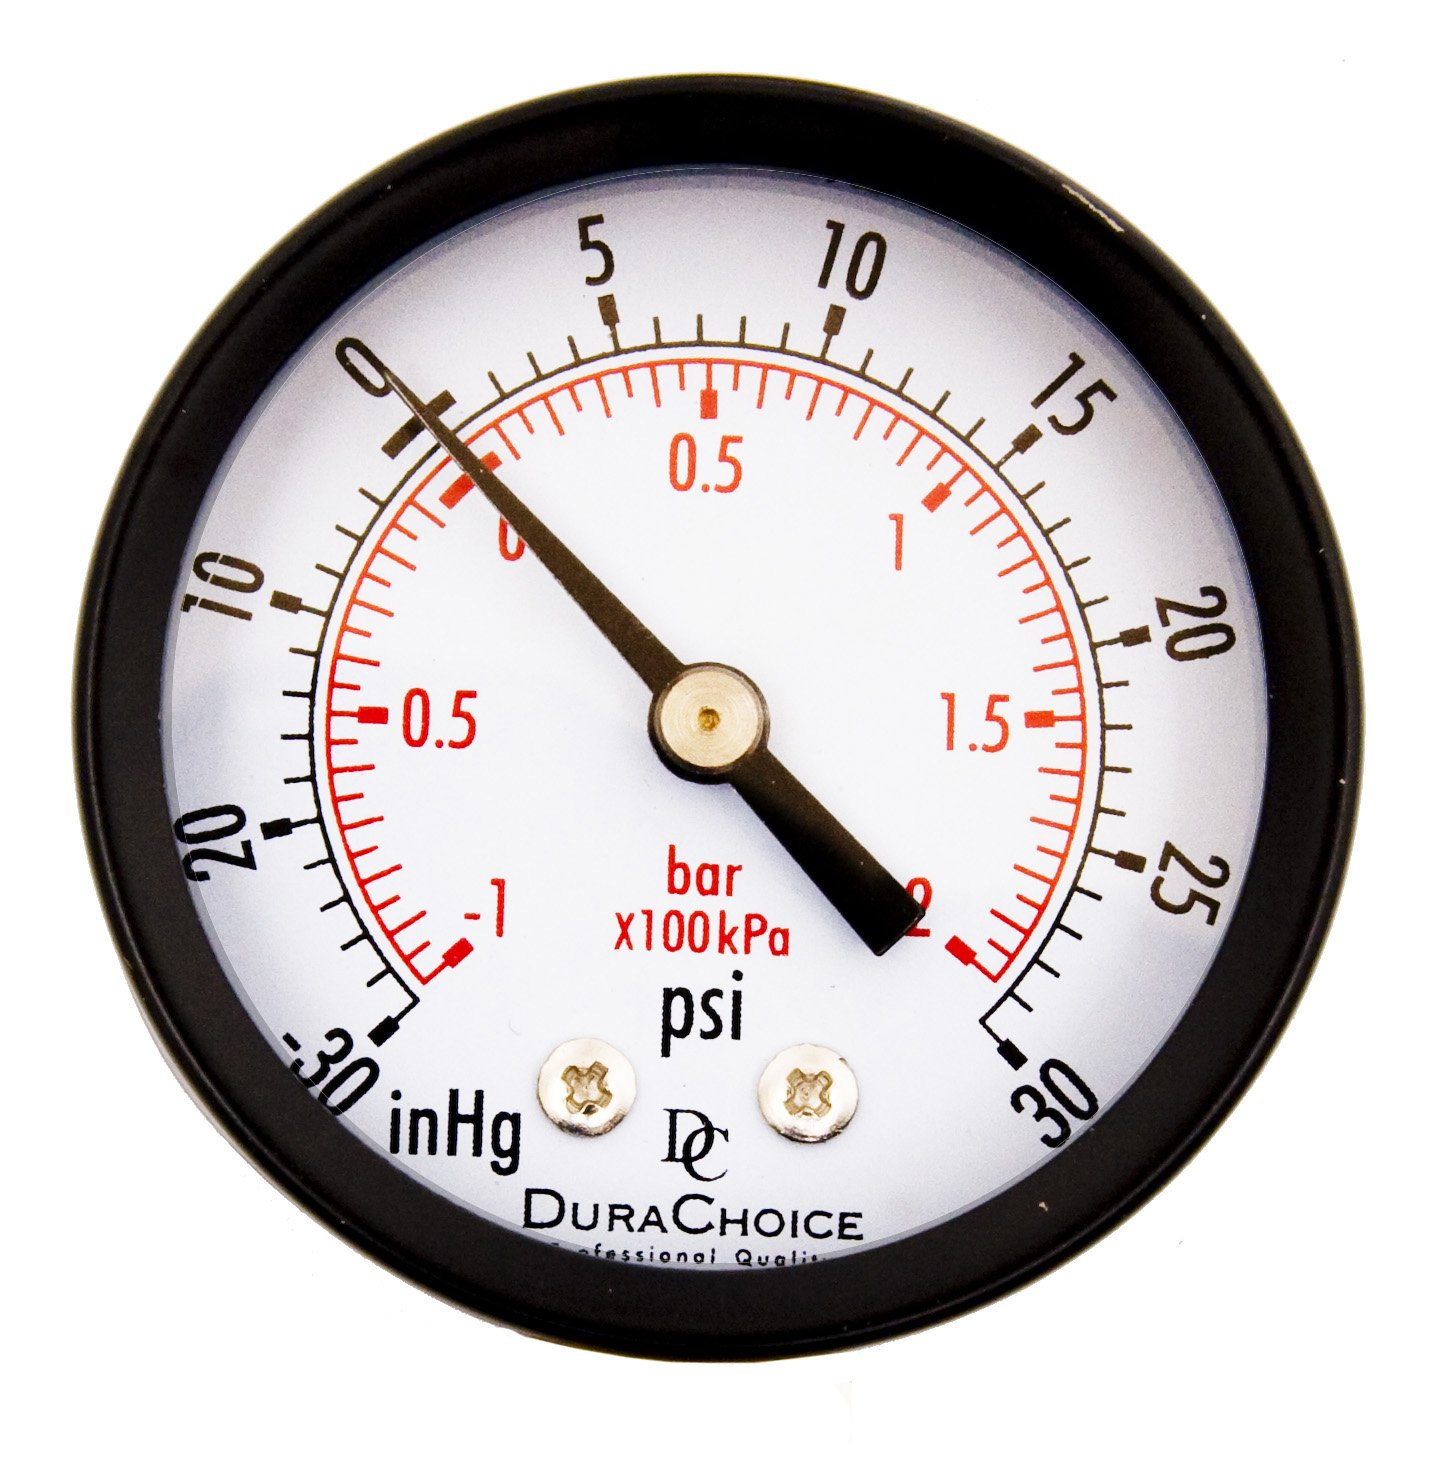 DuraChoice 2 Dial Utility Vacuum Pressure Gauge for Air Compressor Water Oil Gas 1 4 NPT Center Back Mount Black Steel Case 30HG 30PSI